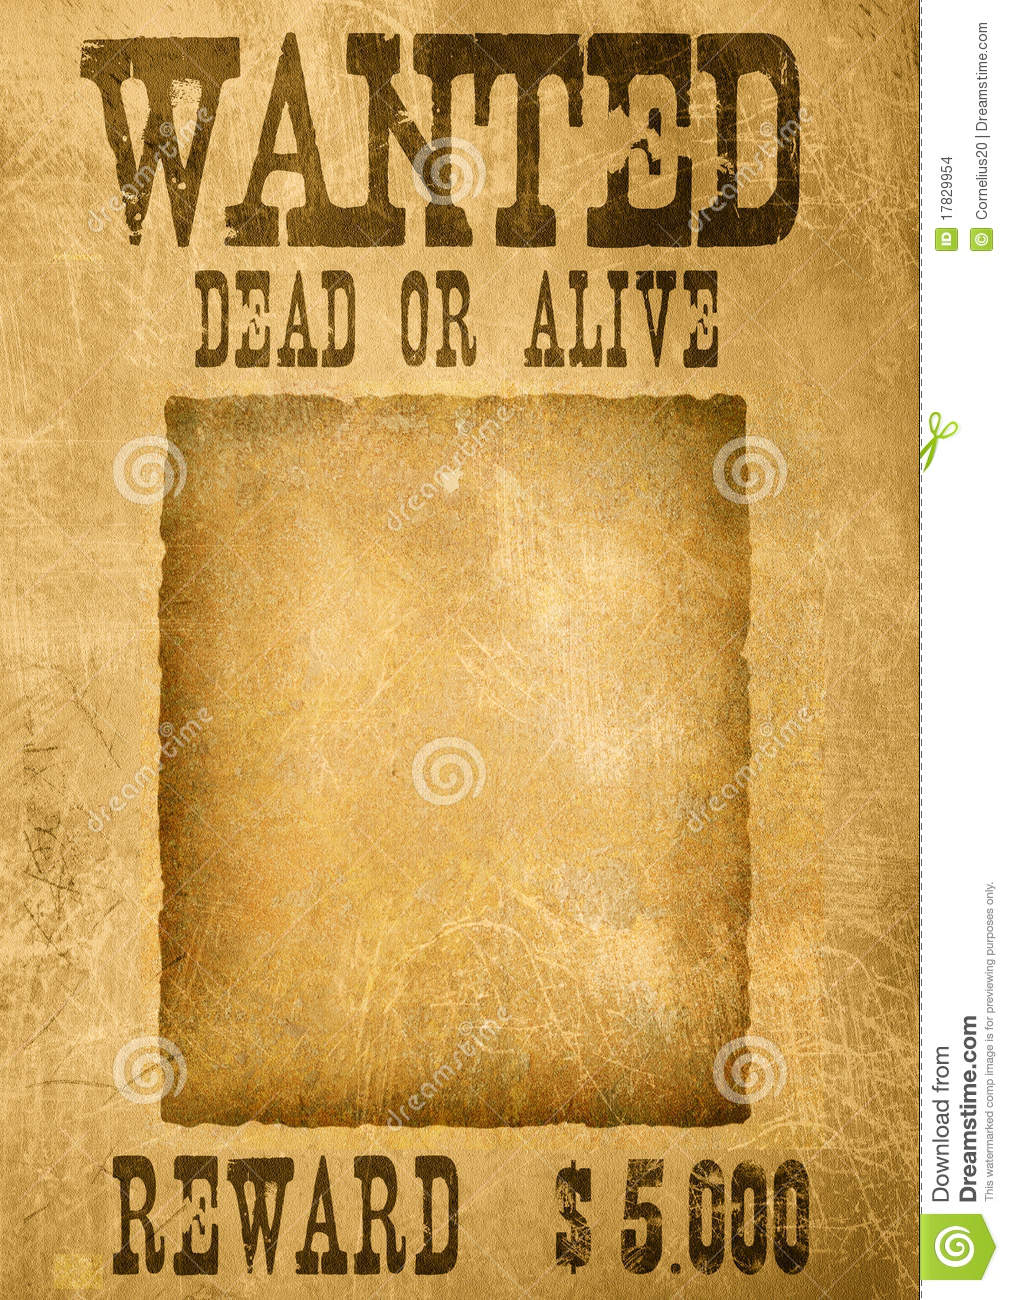 Wanted Templates most wanted poster template pictures to pin on – Most Wanted Posters Templates